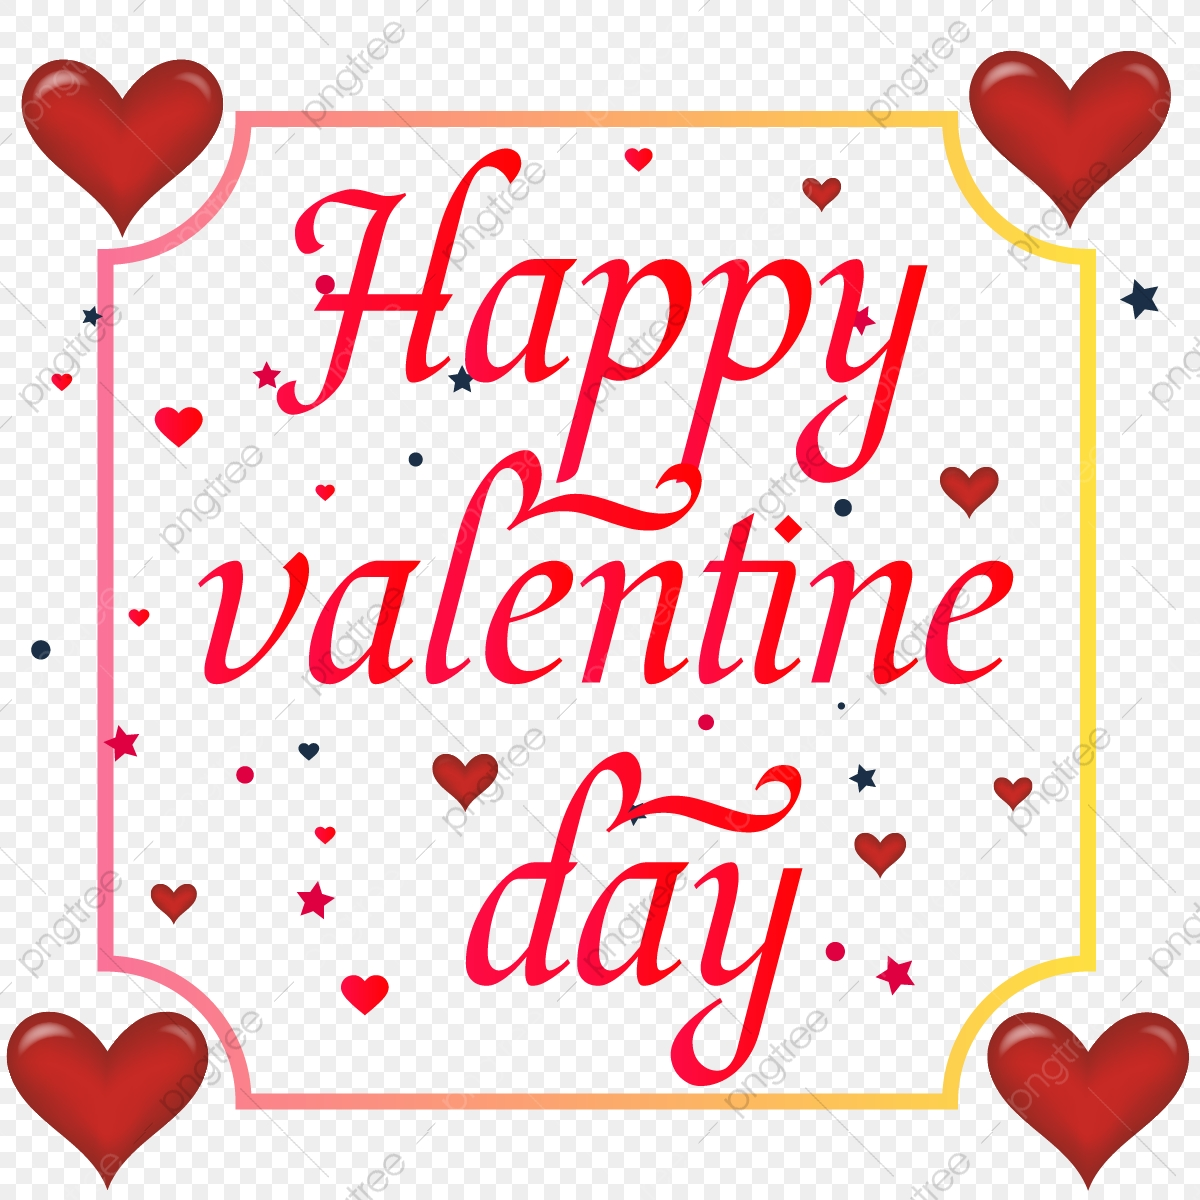 Happy Valentine Day Text Design Love You Valentine S Day 2021 Valentine Design Png And Vector With Transparent Background For Free Download